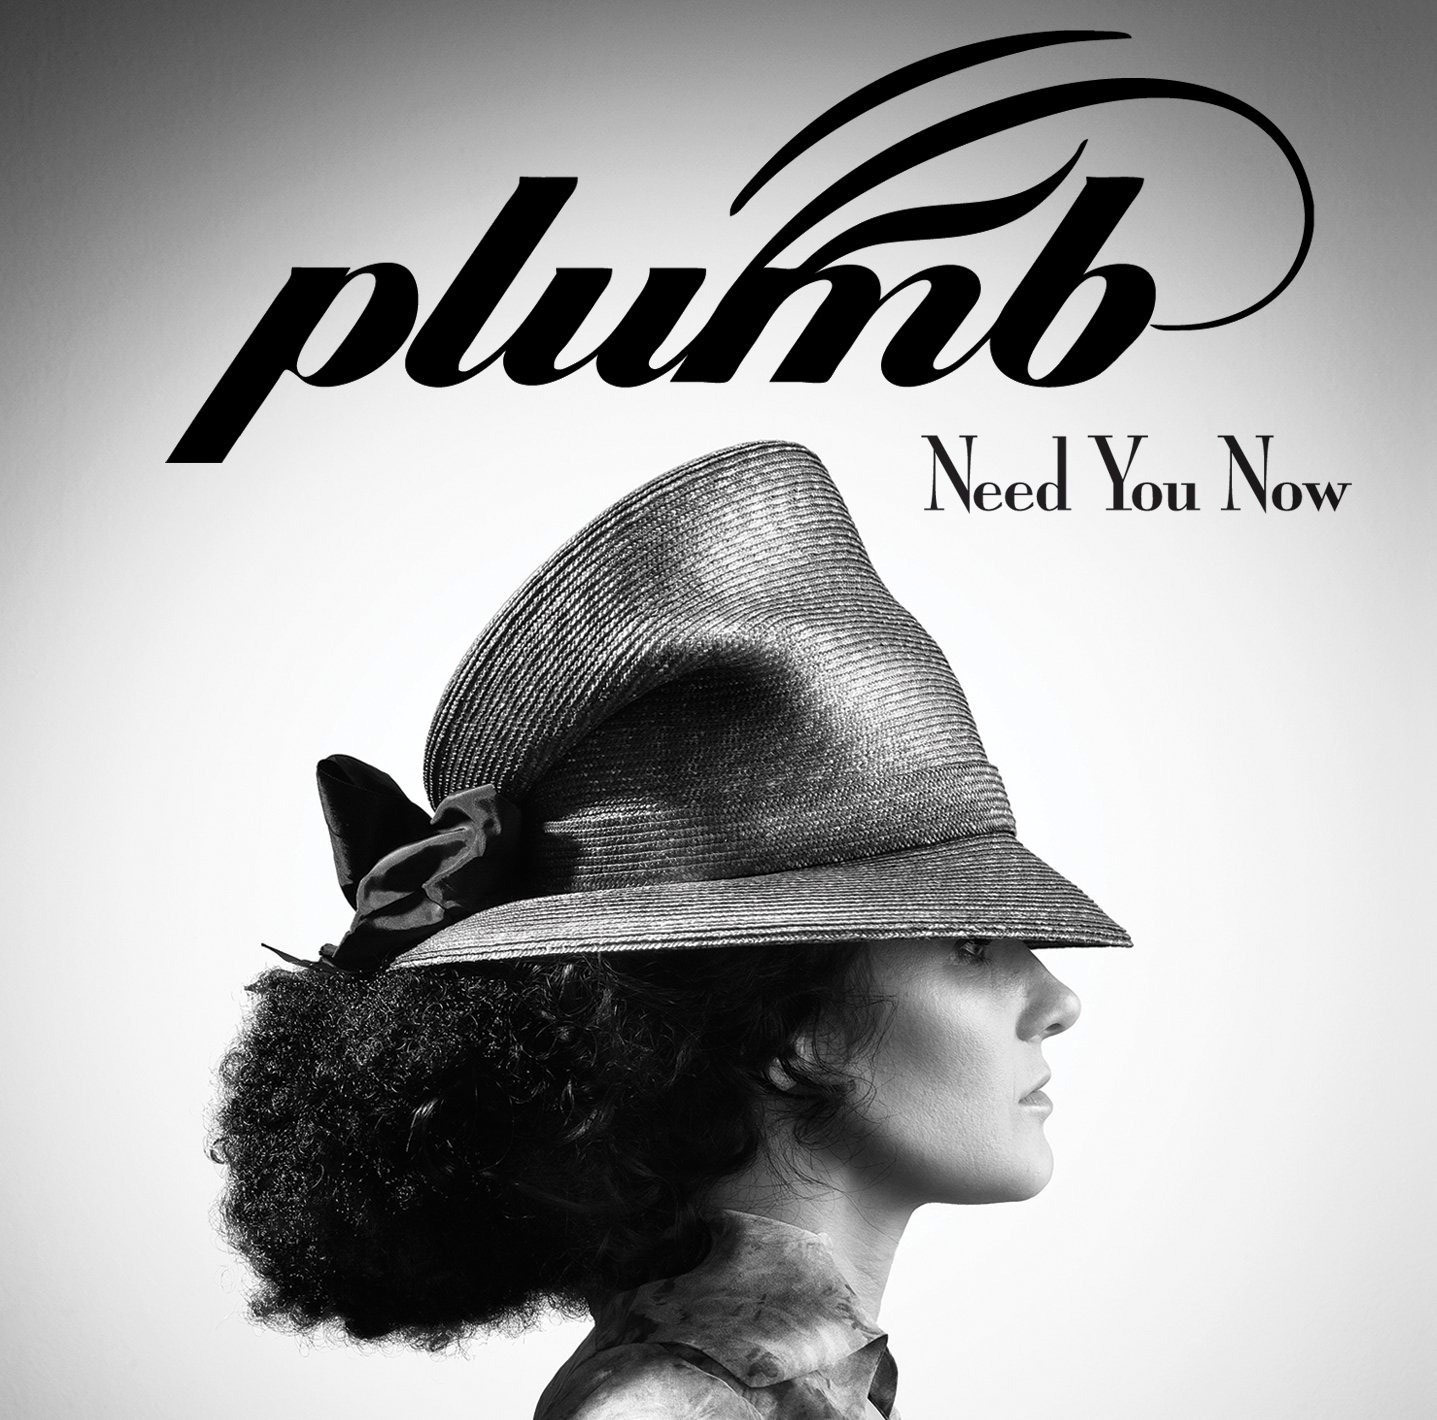 Plumb, Need You Now Review